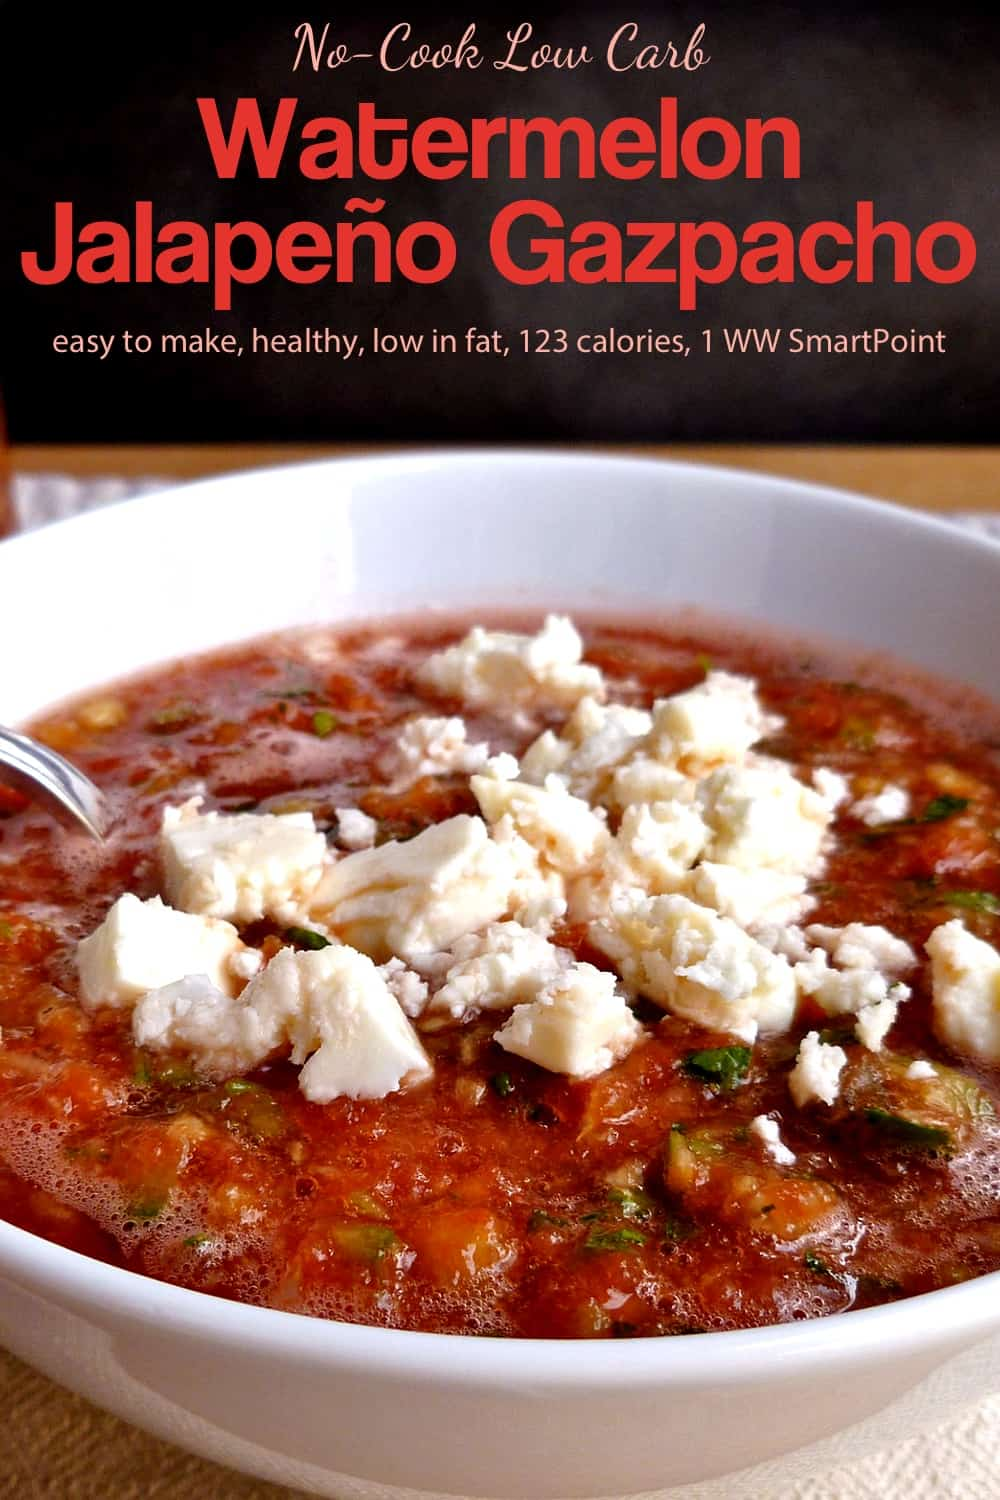 Chilled watermelon gazpacho garnished with crumbled feta cheese in a white bowl.